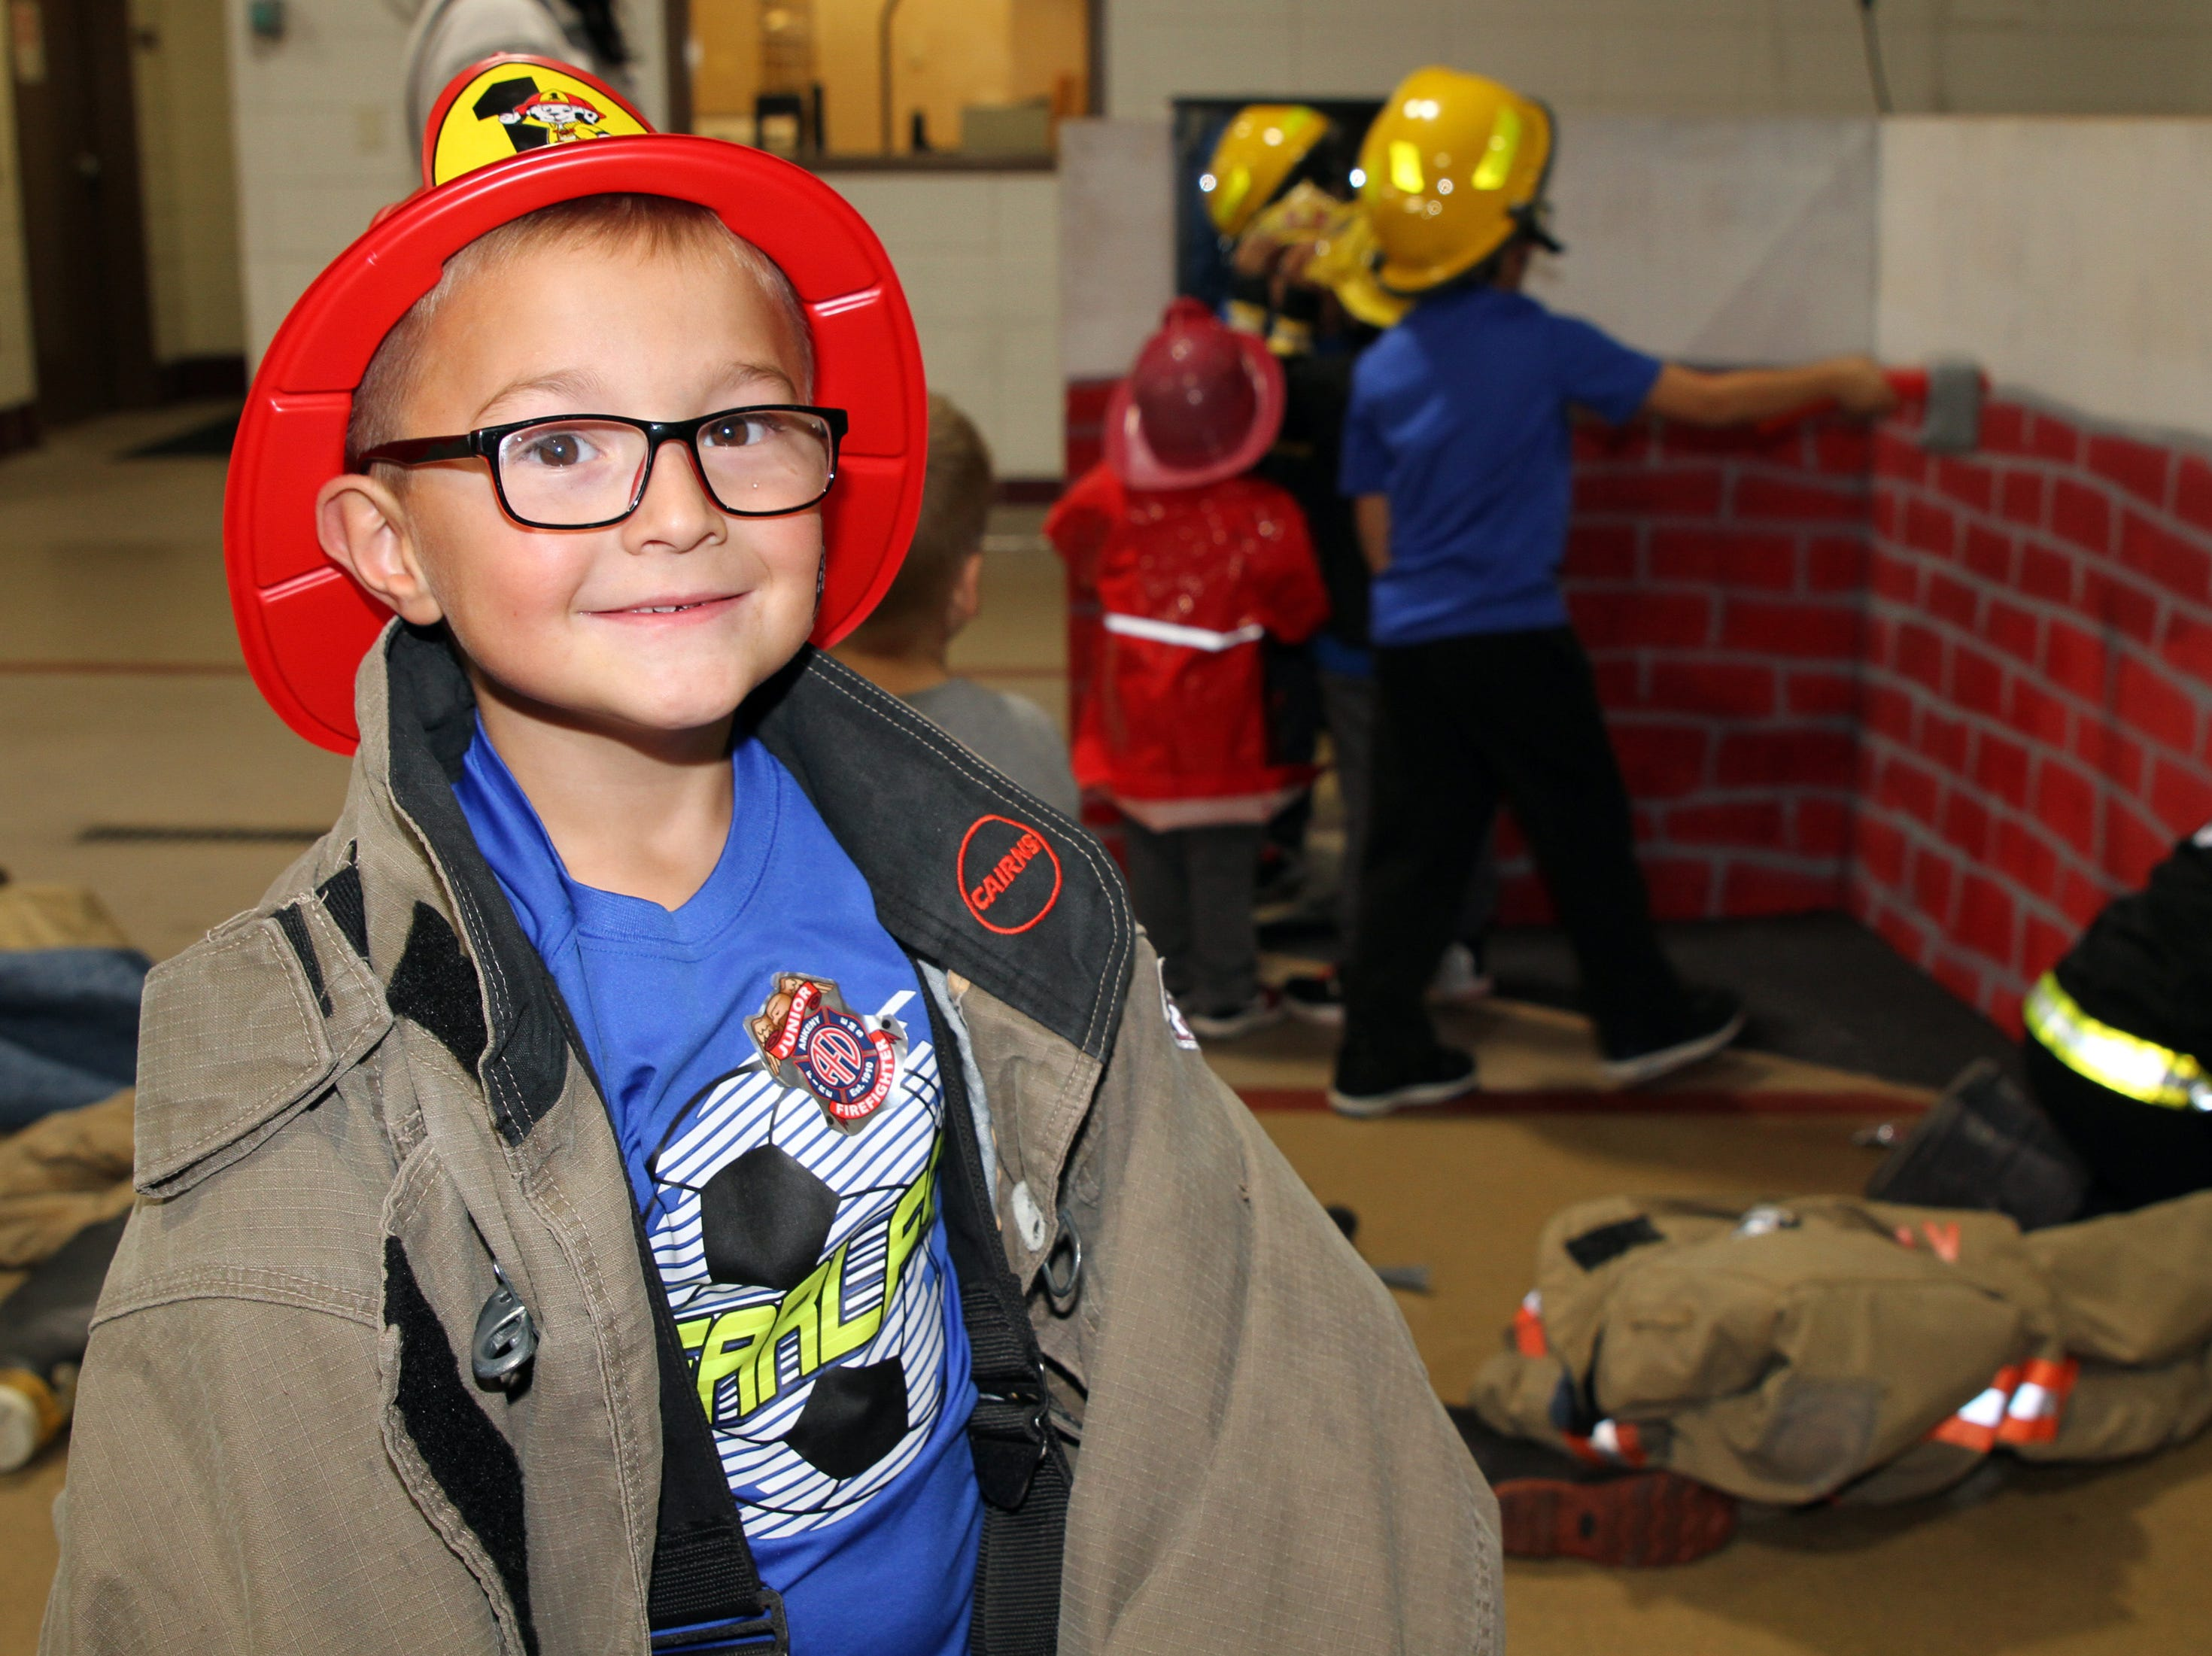 Keegan Whitmire, 6, of Ankeny tries on a fireman's jacket during the Ankeny Fire Department's Fire Prevention Week Open House on Wednesday, Oct. 10, 2018 at Fire Station #1, 120 N.W. Ash Dr. in Ankeny.